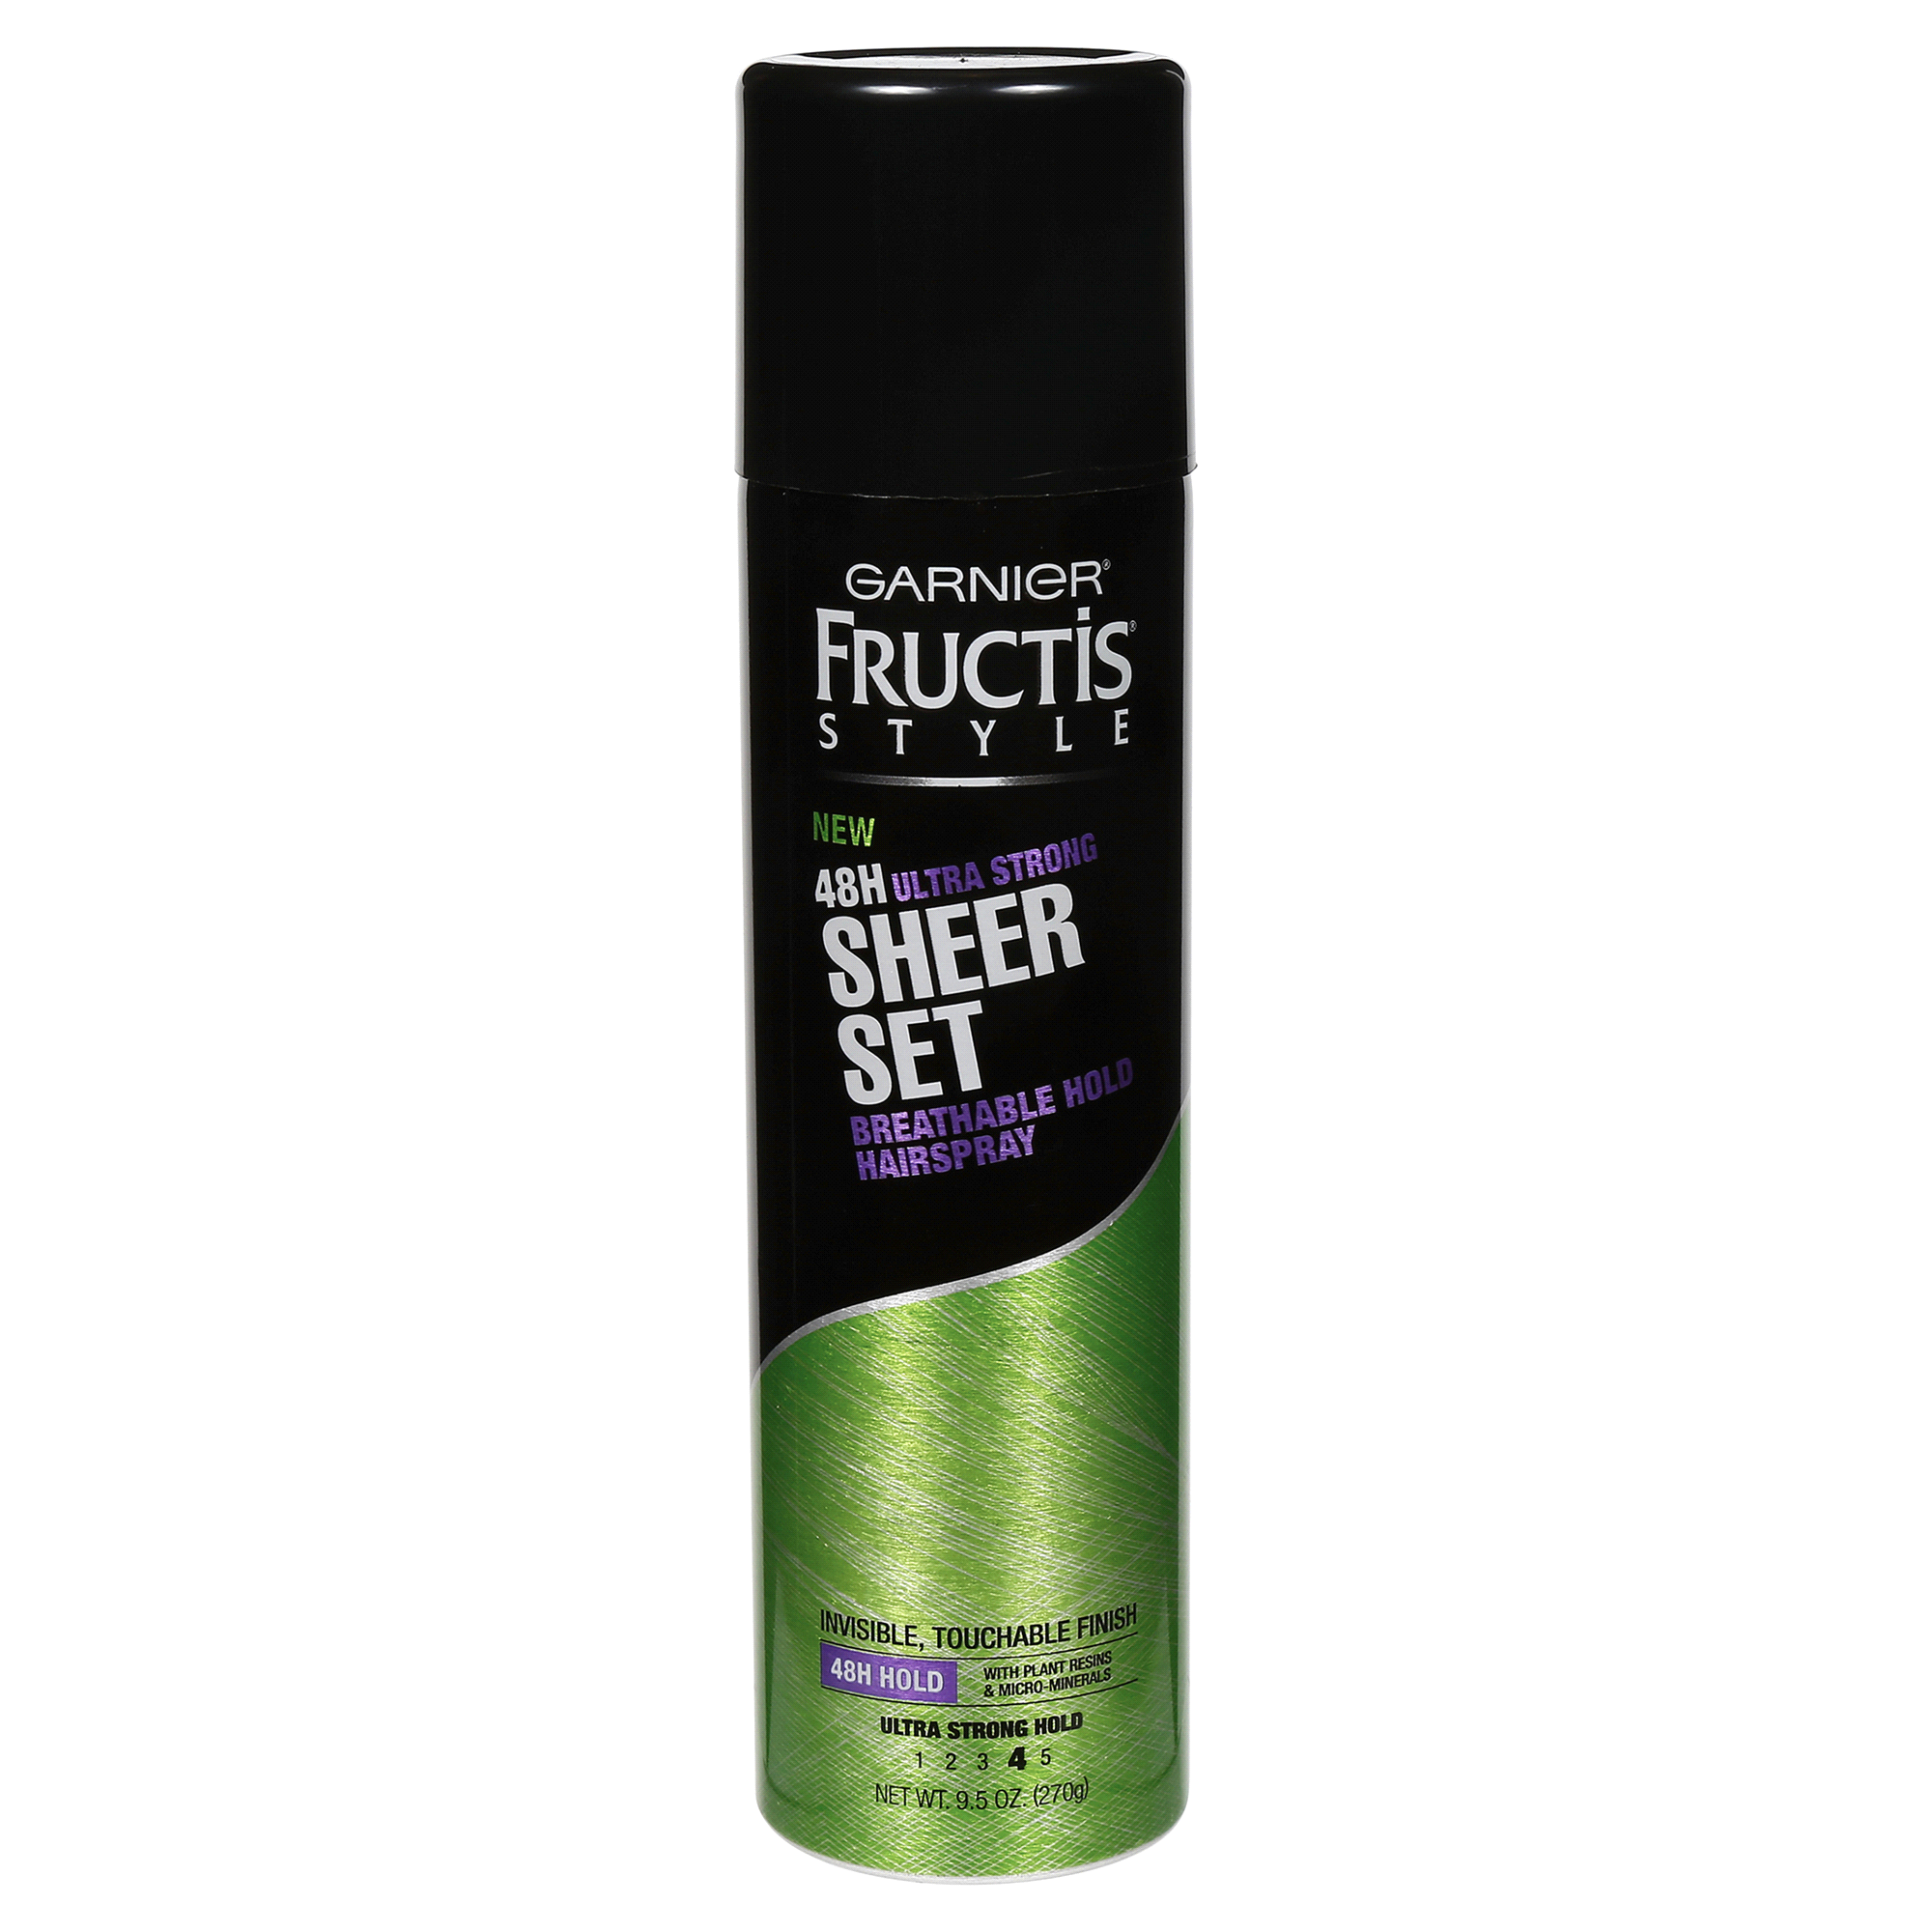 WHOLESALE GARNIER FRUCTIS SHEER SET BREATHABLE HOLD HAIRSPRAY 9.5 OZ - ULTRA STRONG - 48 PIECE LOT